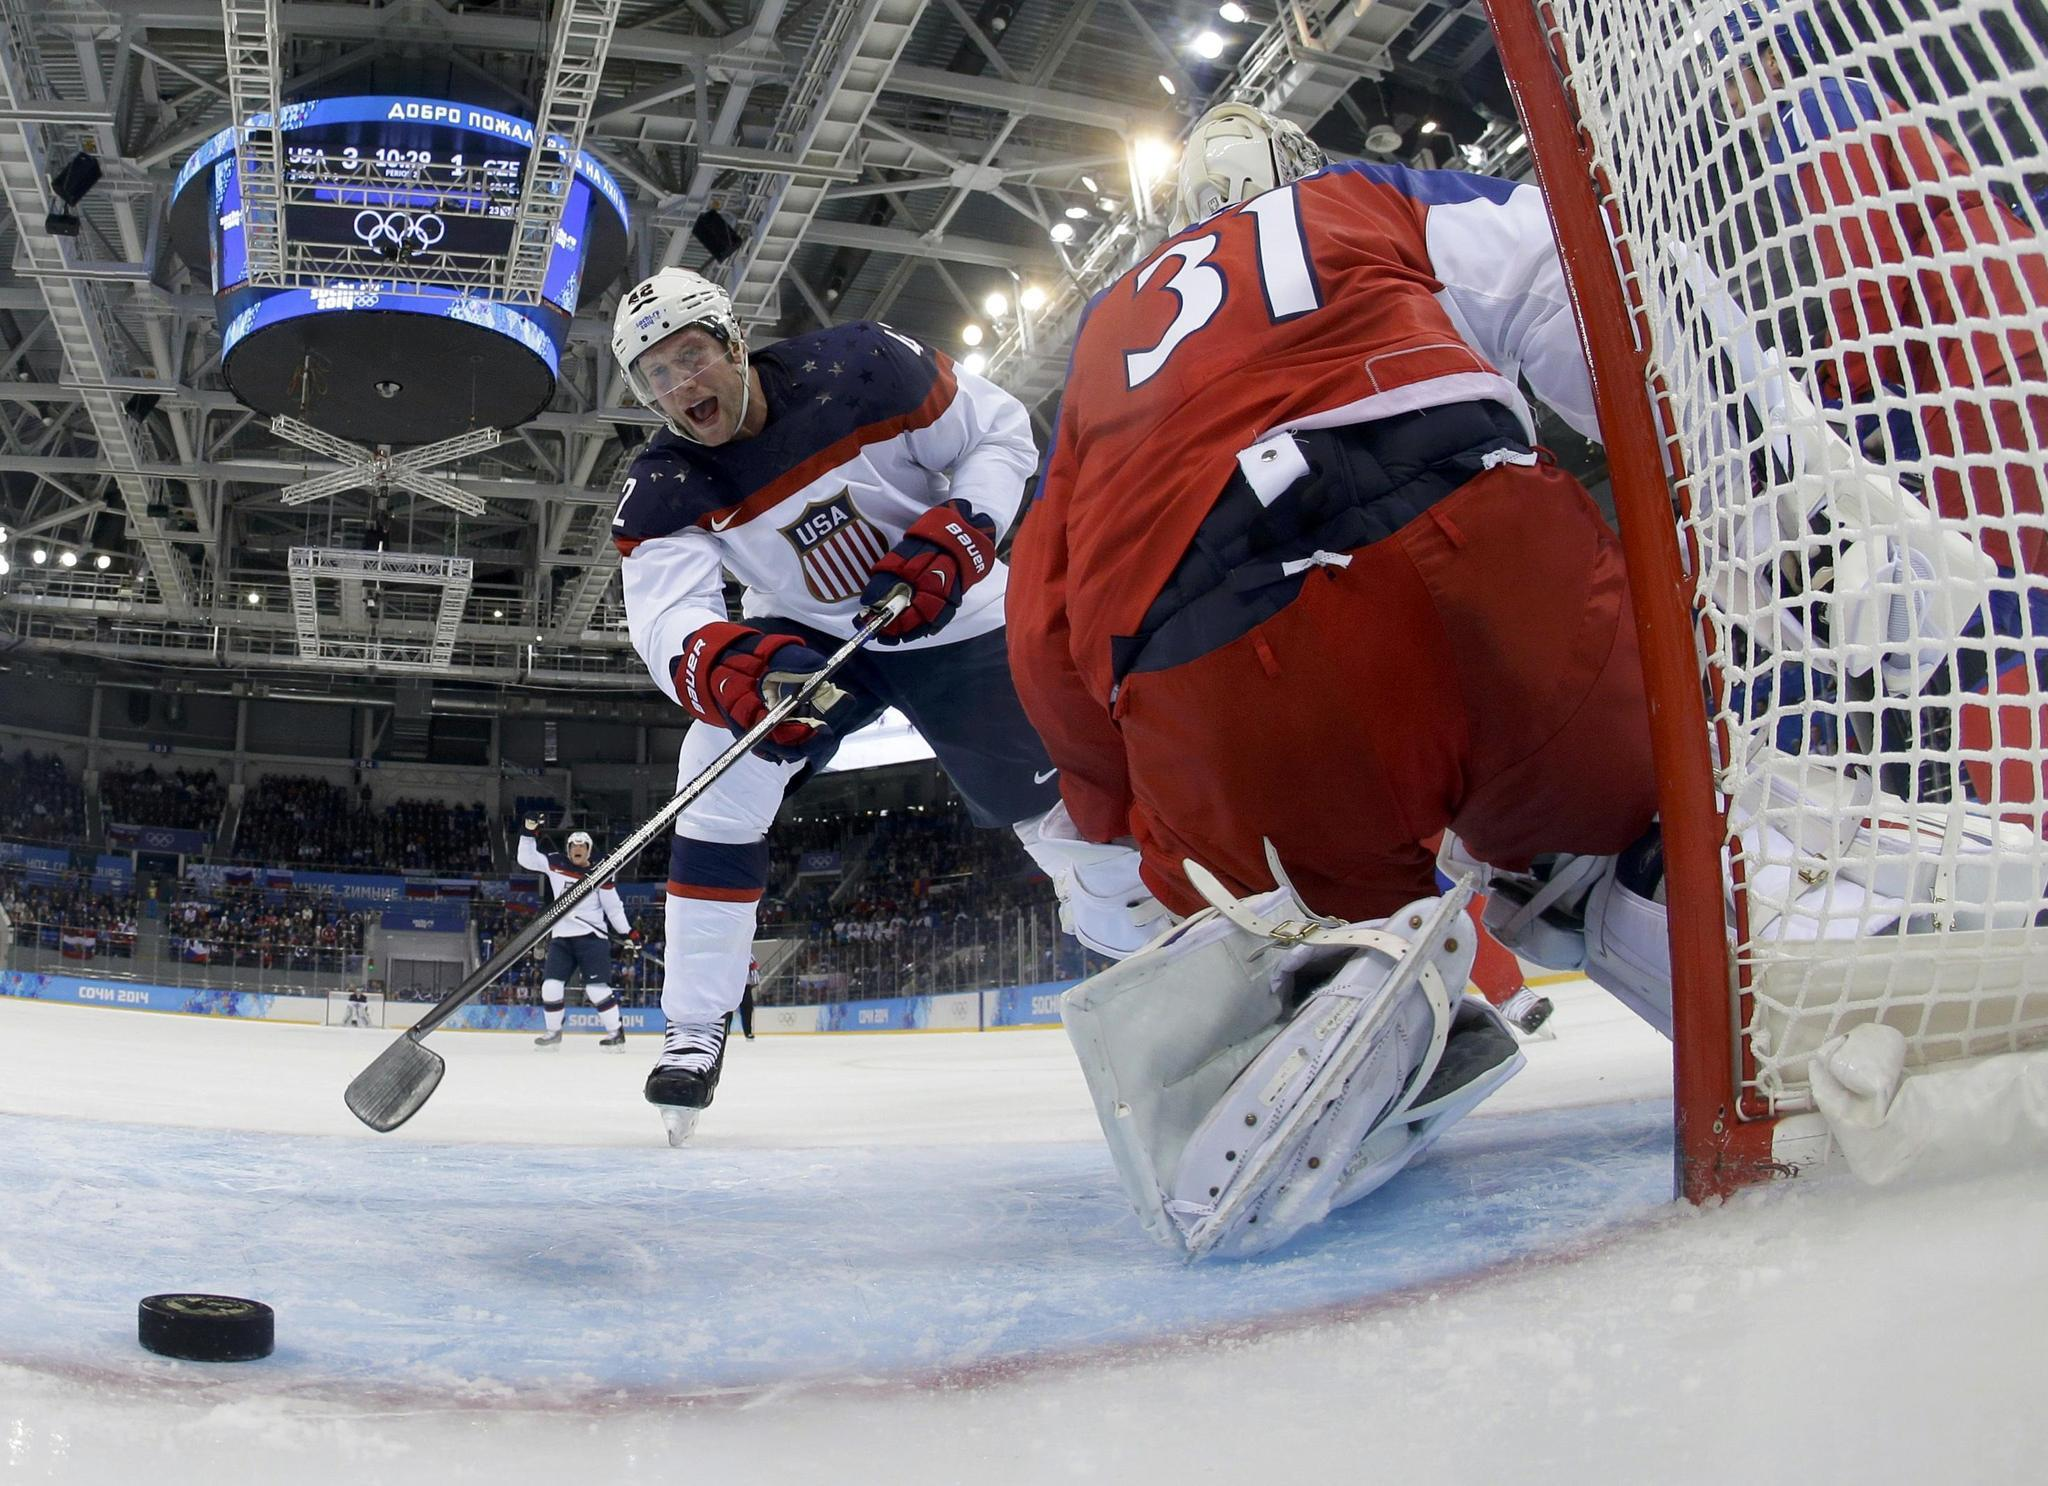 Team USA's David Backes reacts as the puck crosses the goal line past Czech Republic's goalie Ondrej Pavelec Wednesday.